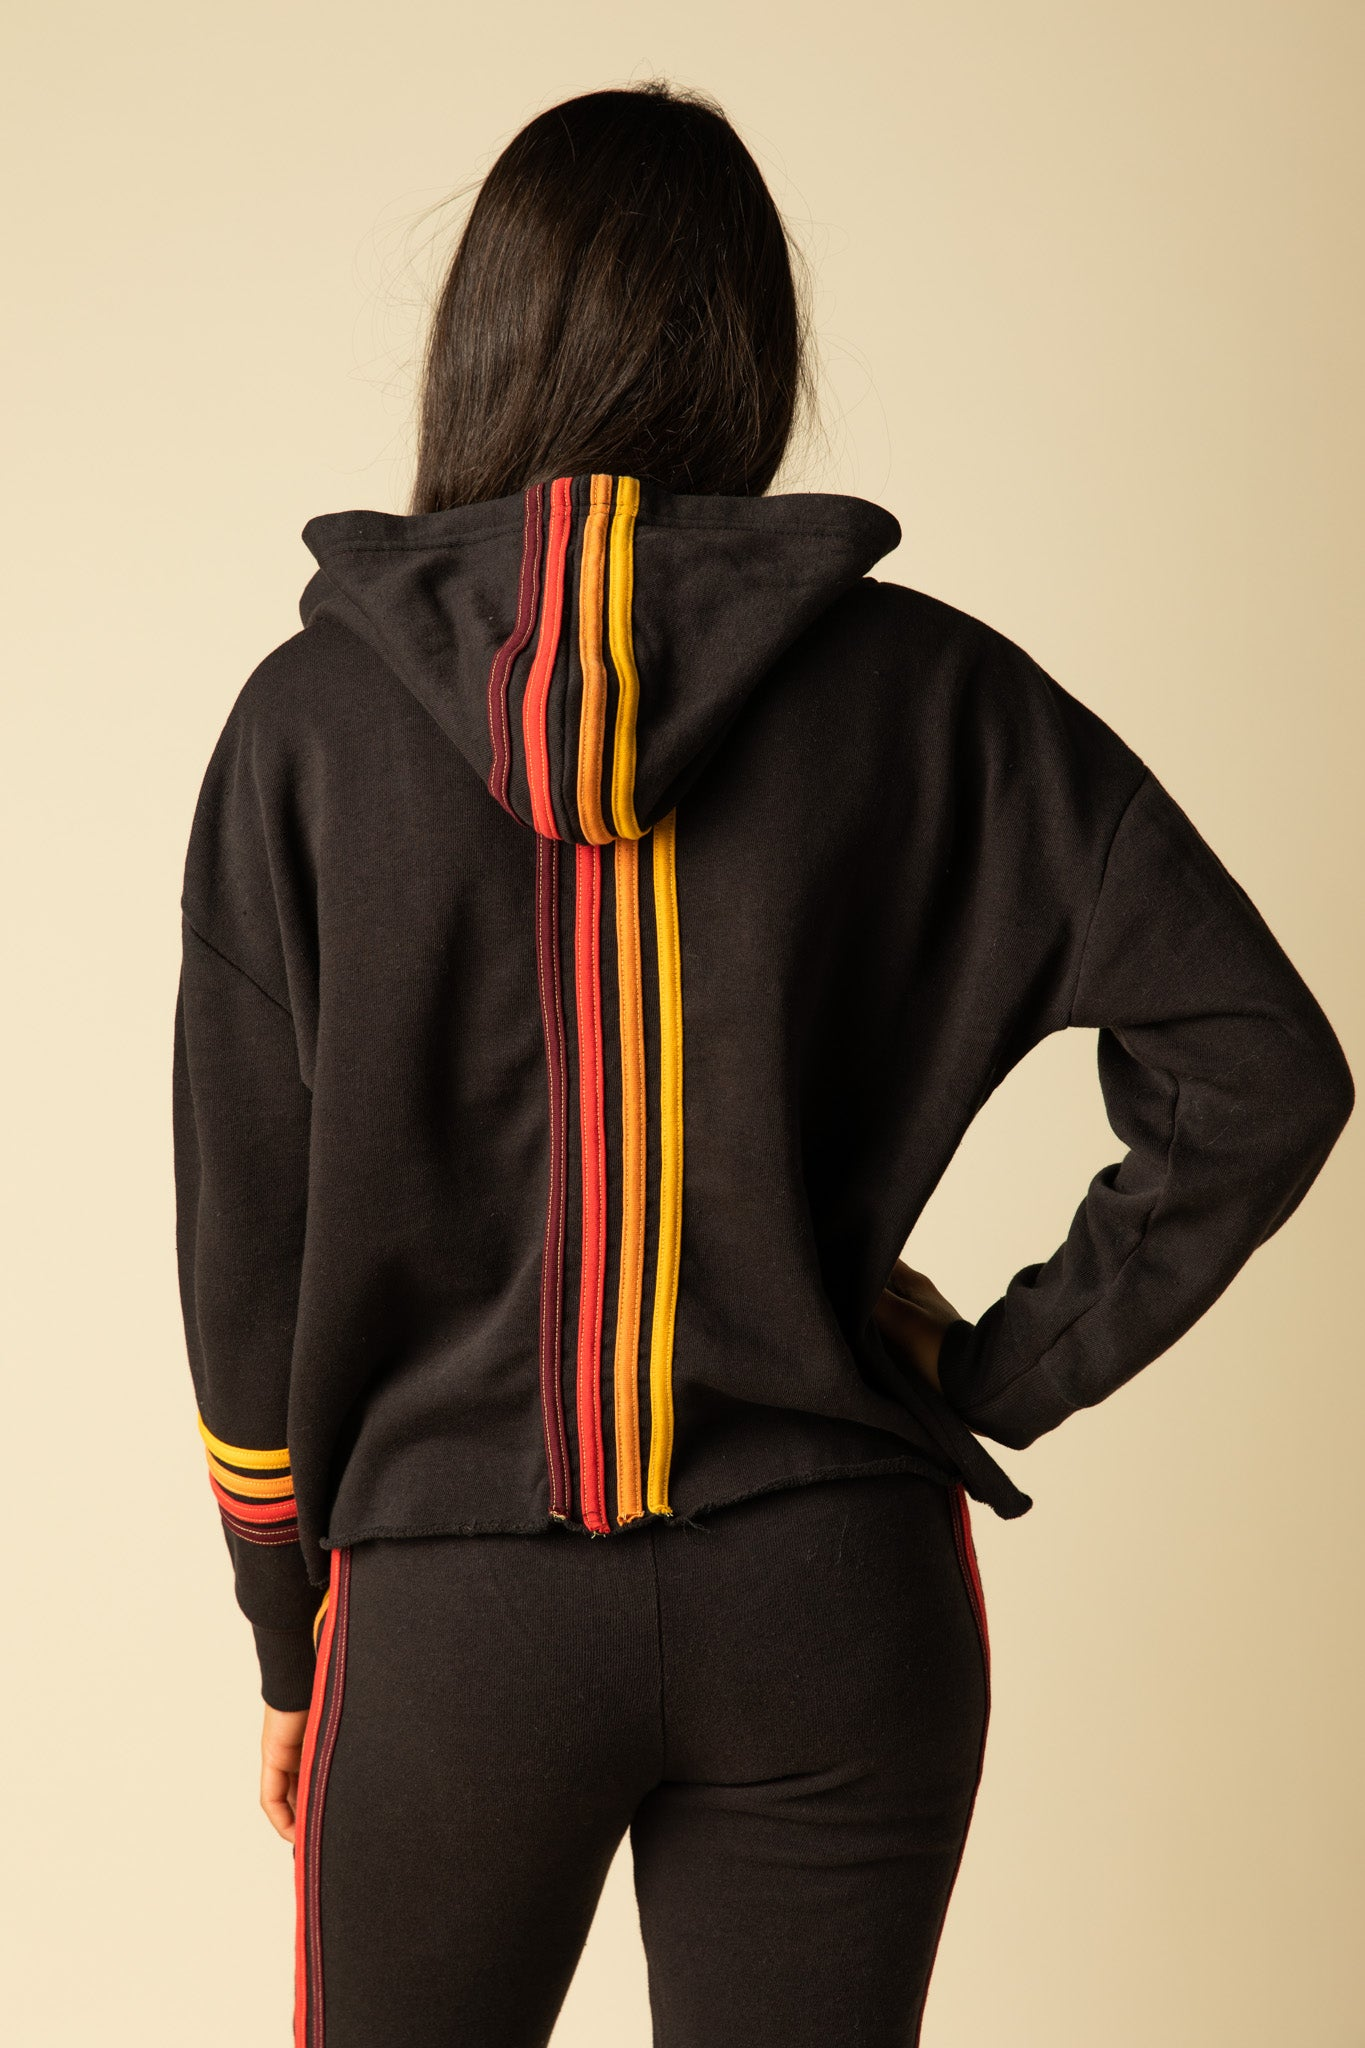 BURNOUT HOODY WITH MULTI STRIPES